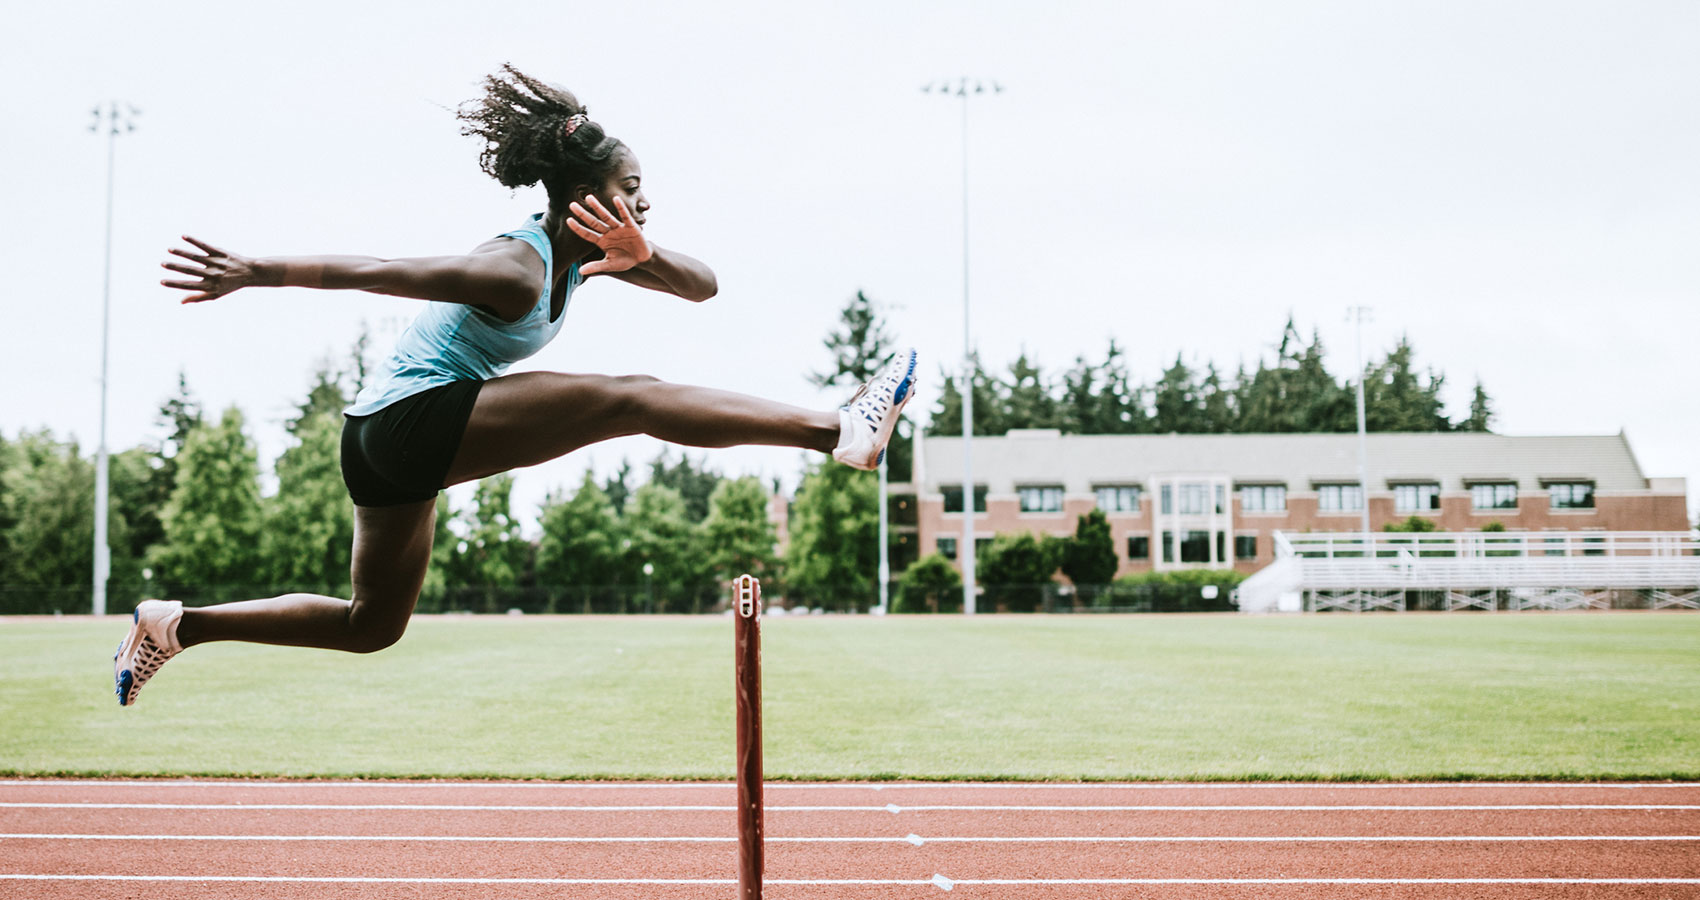 a woman jumps over a hurdle on a track